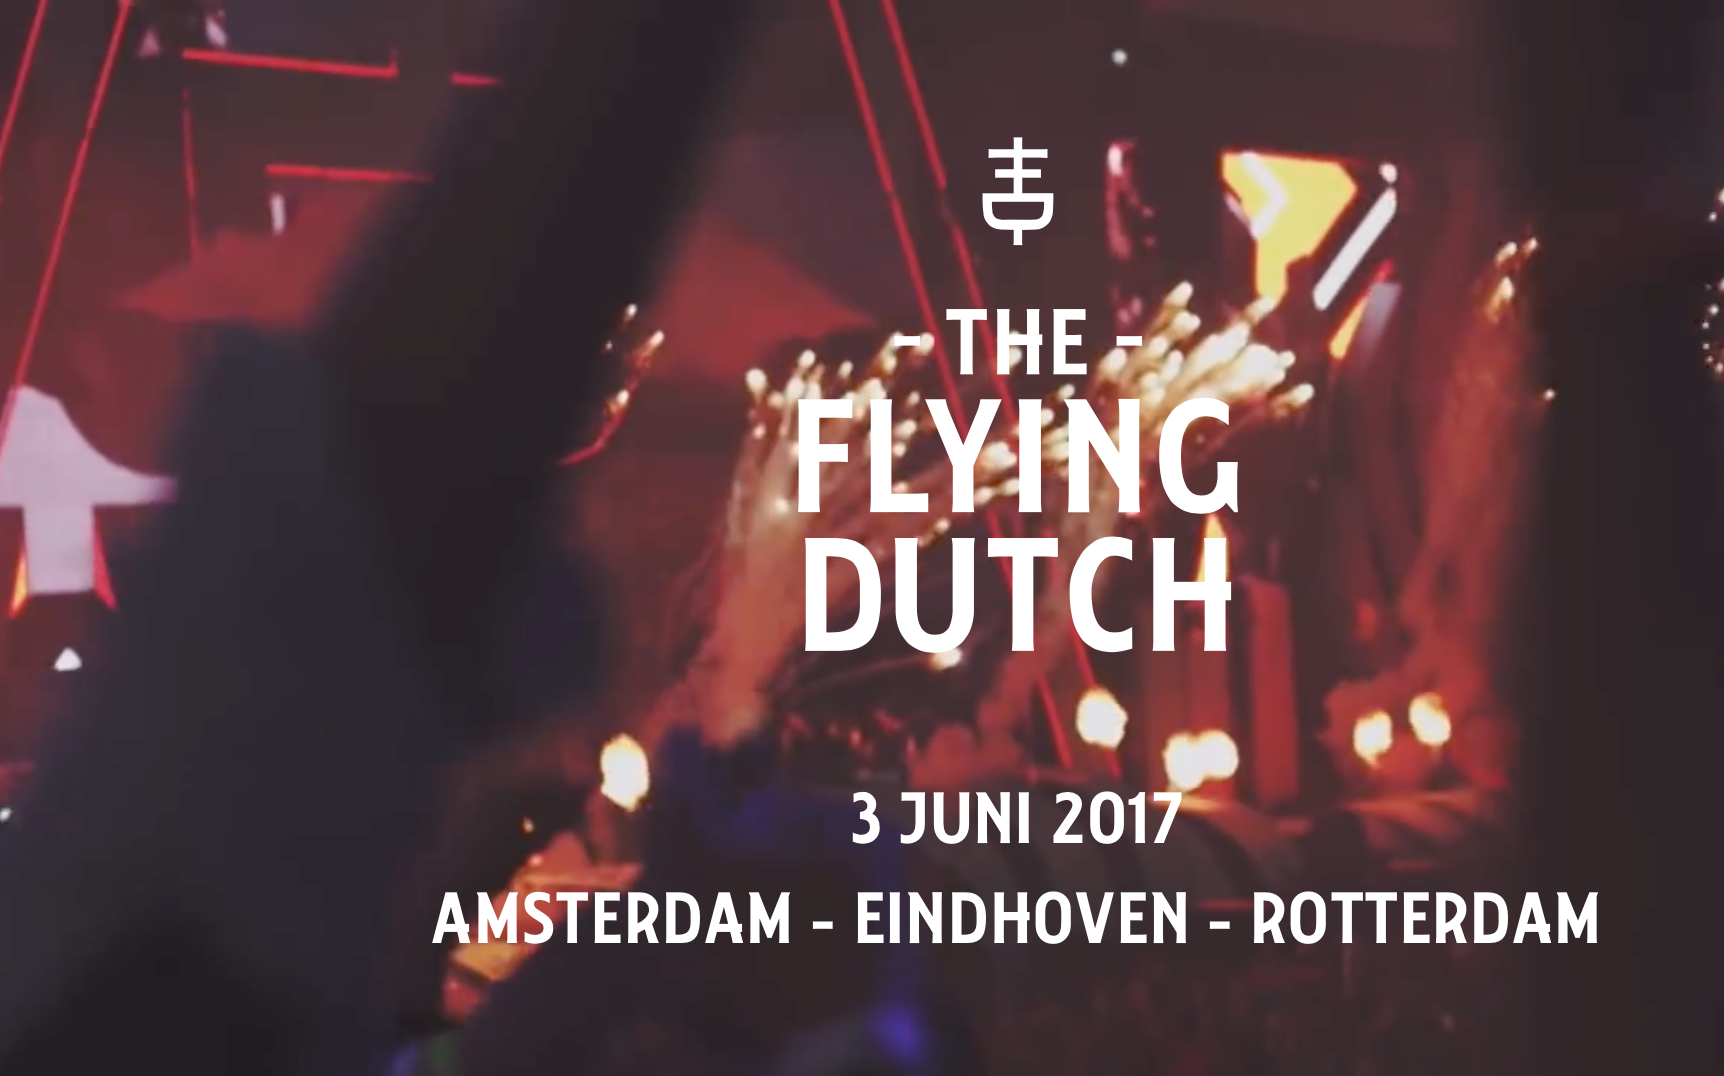 The Flying Dutch